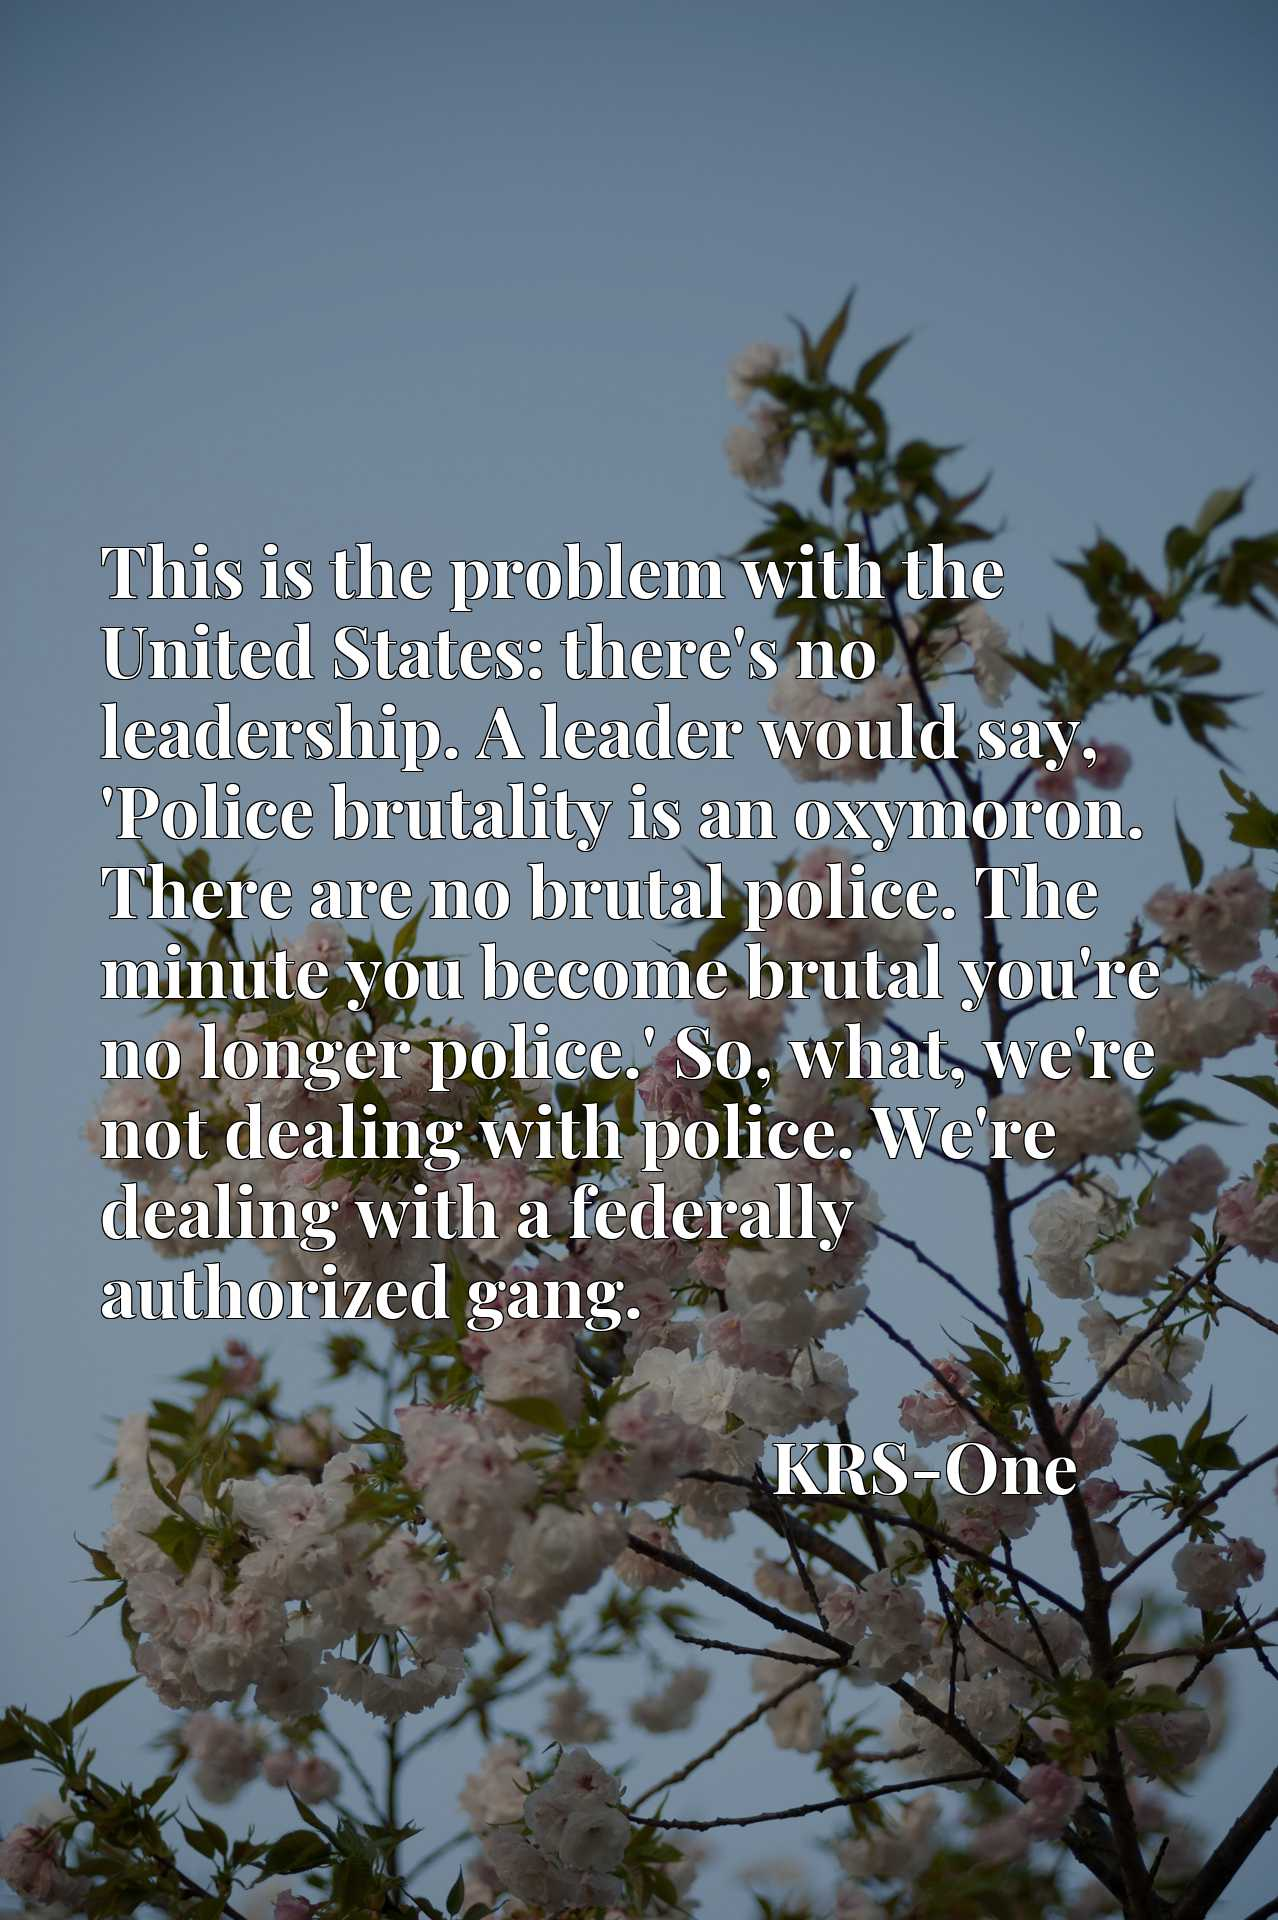 This is the problem with the United States: there's no leadership. A leader would say, 'Police brutality is an oxymoron. There are no brutal police. The minute you become brutal you're no longer police.' So, what, we're not dealing with police. We're dealing with a federally authorized gang.